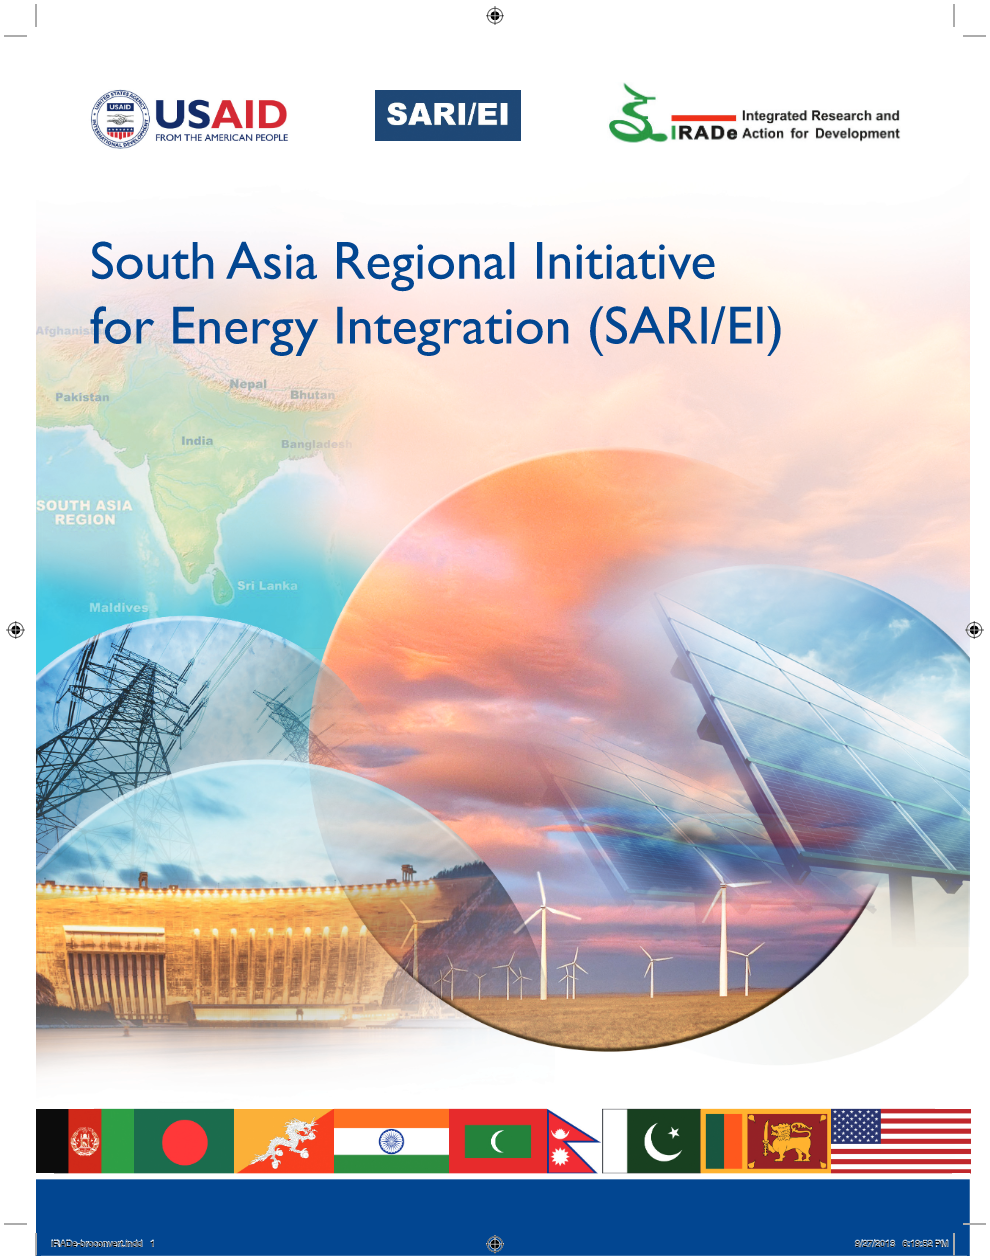 Brochure-2013-South-Asia-Regional-Initiative-for-Energy-Integeration-Rajiv